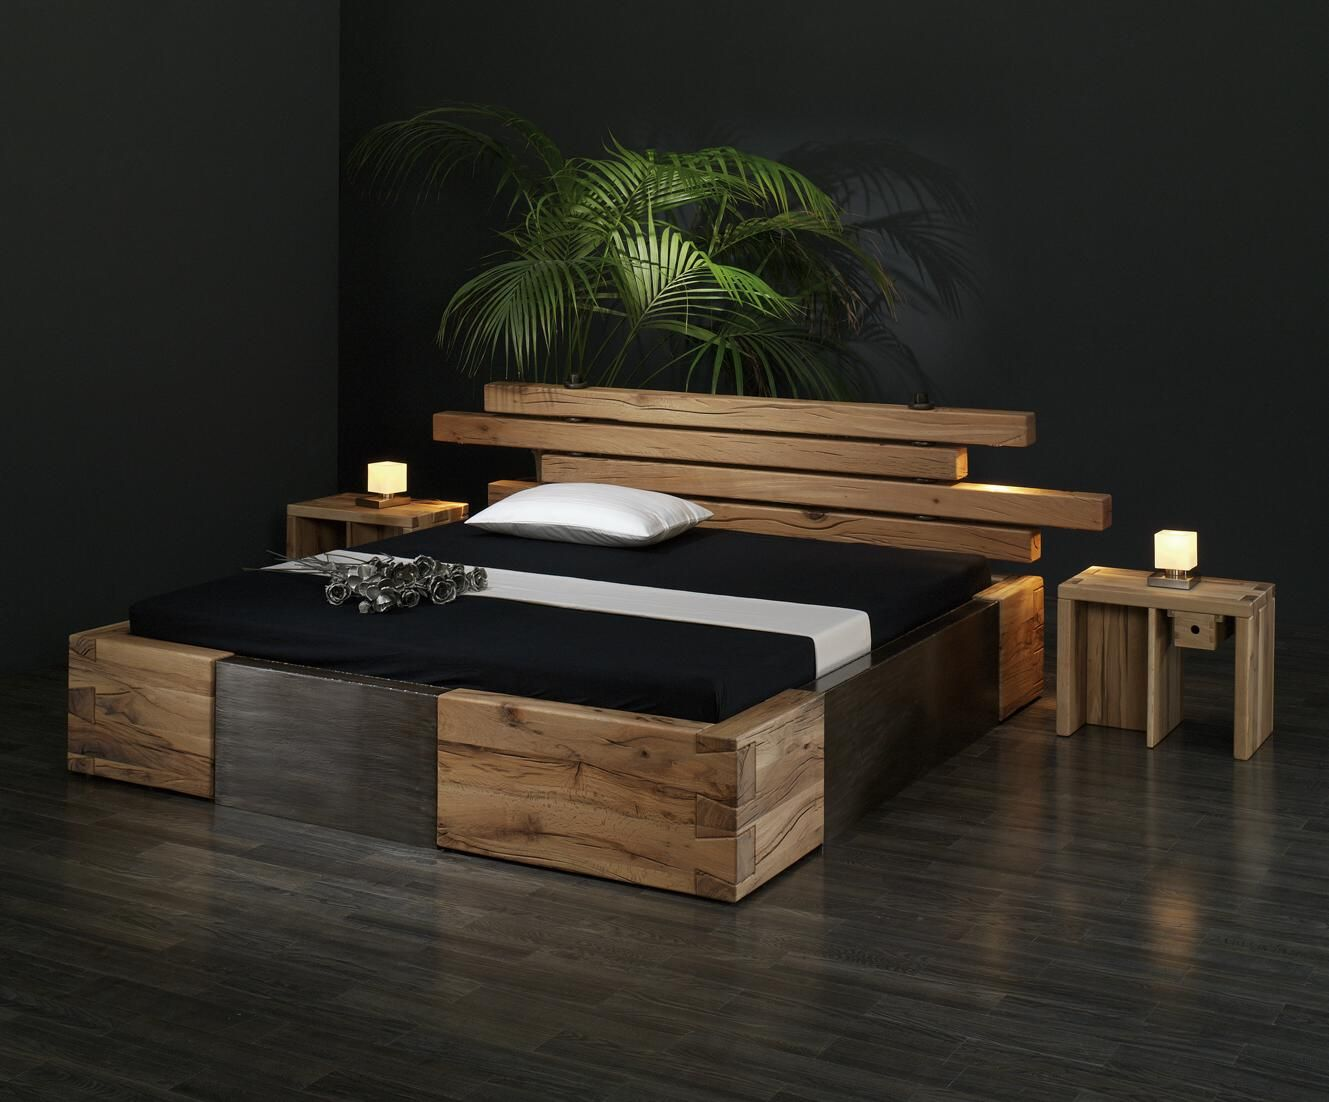 holz bett design google search bedroom pinterest google search google and searching. Black Bedroom Furniture Sets. Home Design Ideas